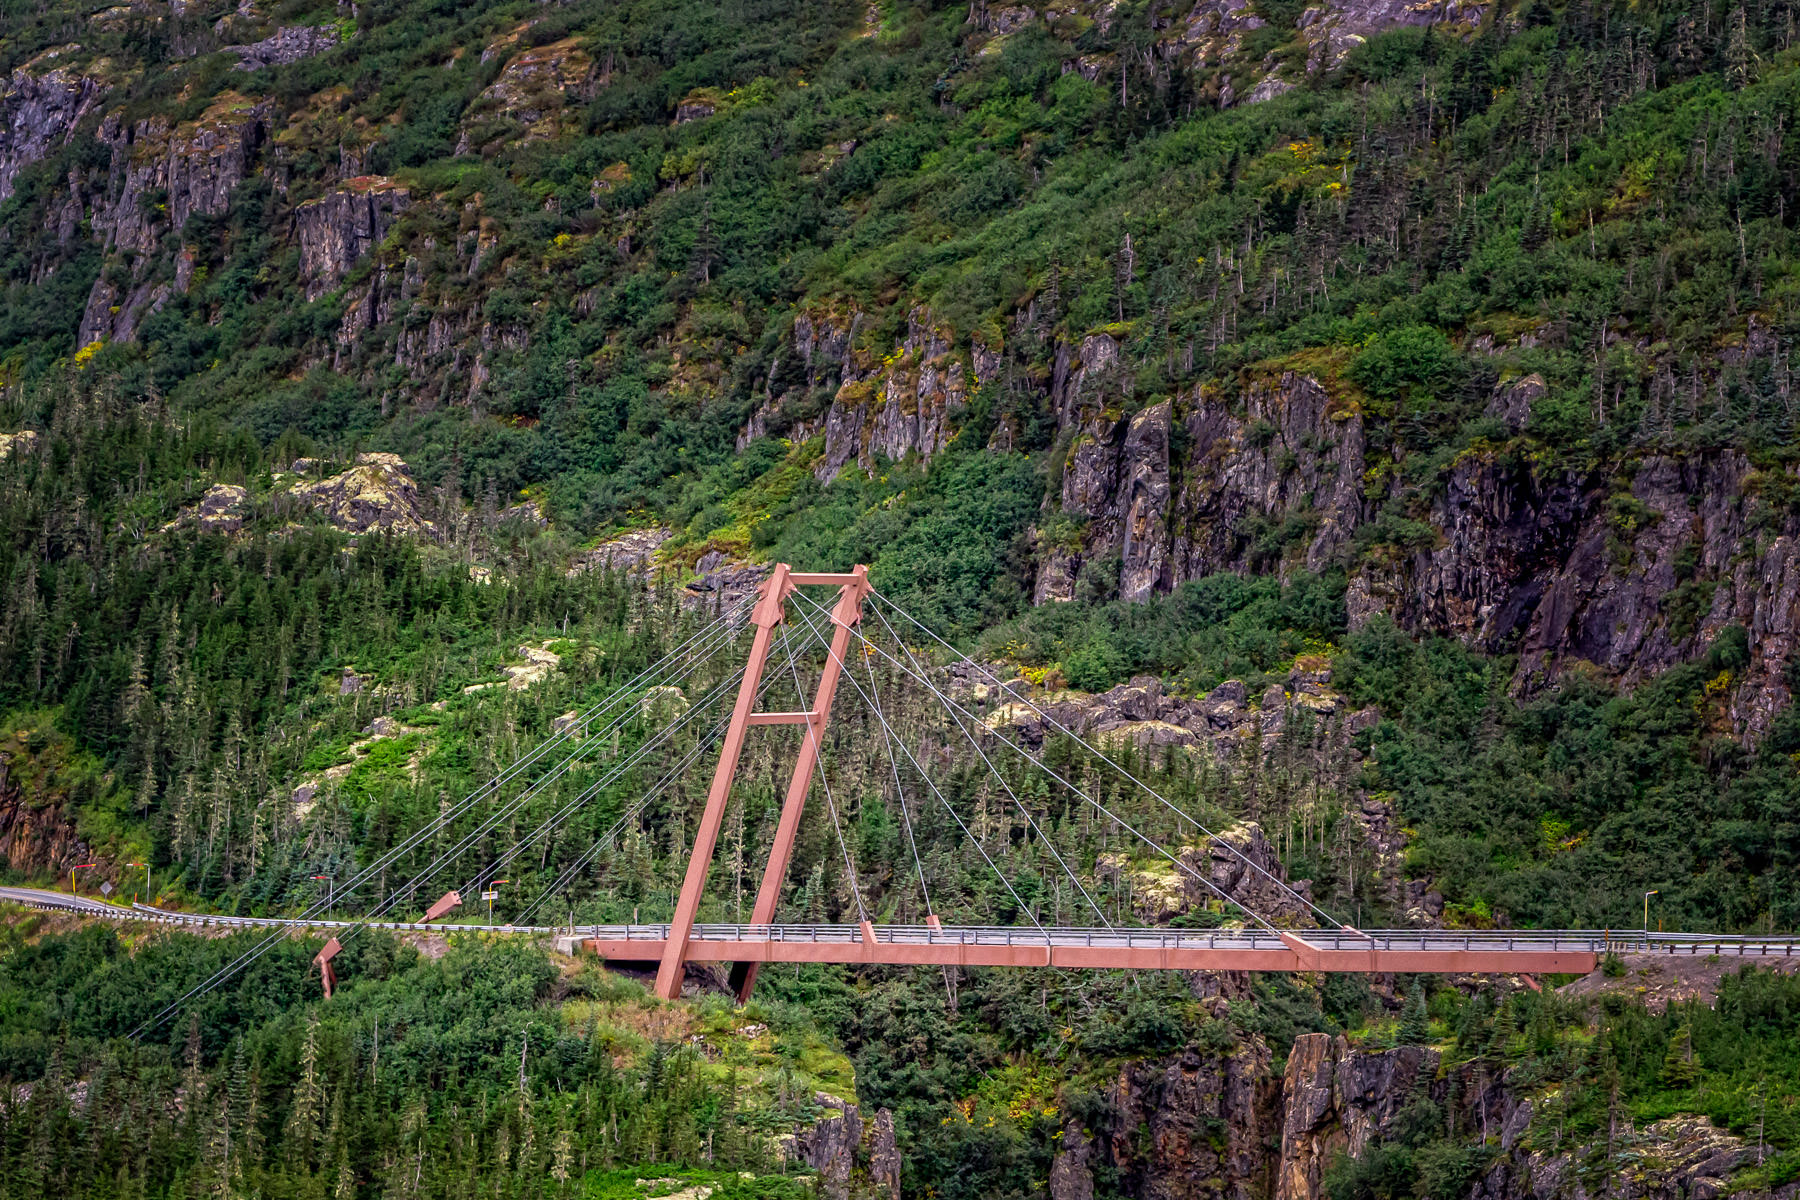 The Captain William Moore Suspension Bridge on the Klondike Highway near Skagway, Alaska. Interestingly, this bridge is only anchored on one side in the hopes that it won't collapse in the event of an earthquake.